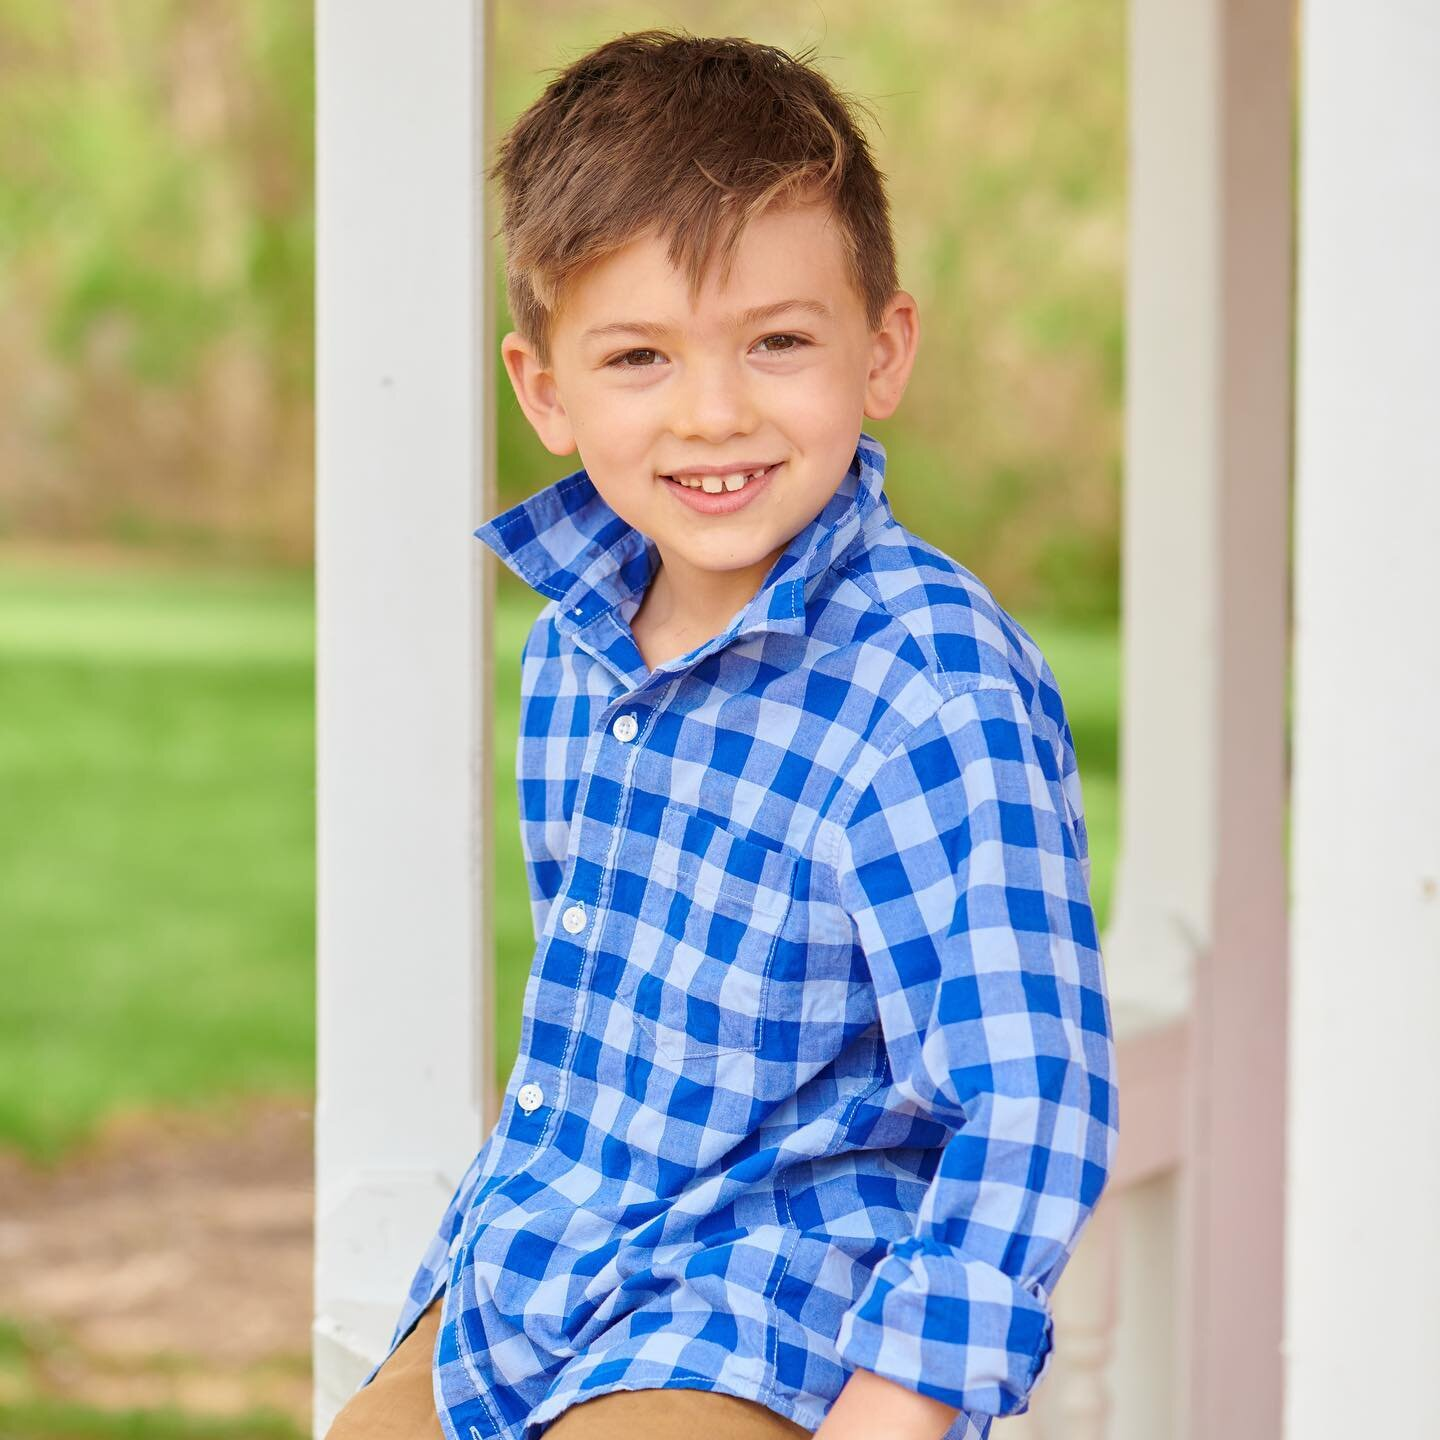 """Smiley Max. 💙 Serious Max.  This little guy is ready for tball season, likes to play chess & can inhale ice cream like no one else! He is growing too fast! Must get me some """"no grow spray"""" to keep him little forever! 😝  Gorgeous """"senior portraits"""" by my friend @meganngalehouse!"""